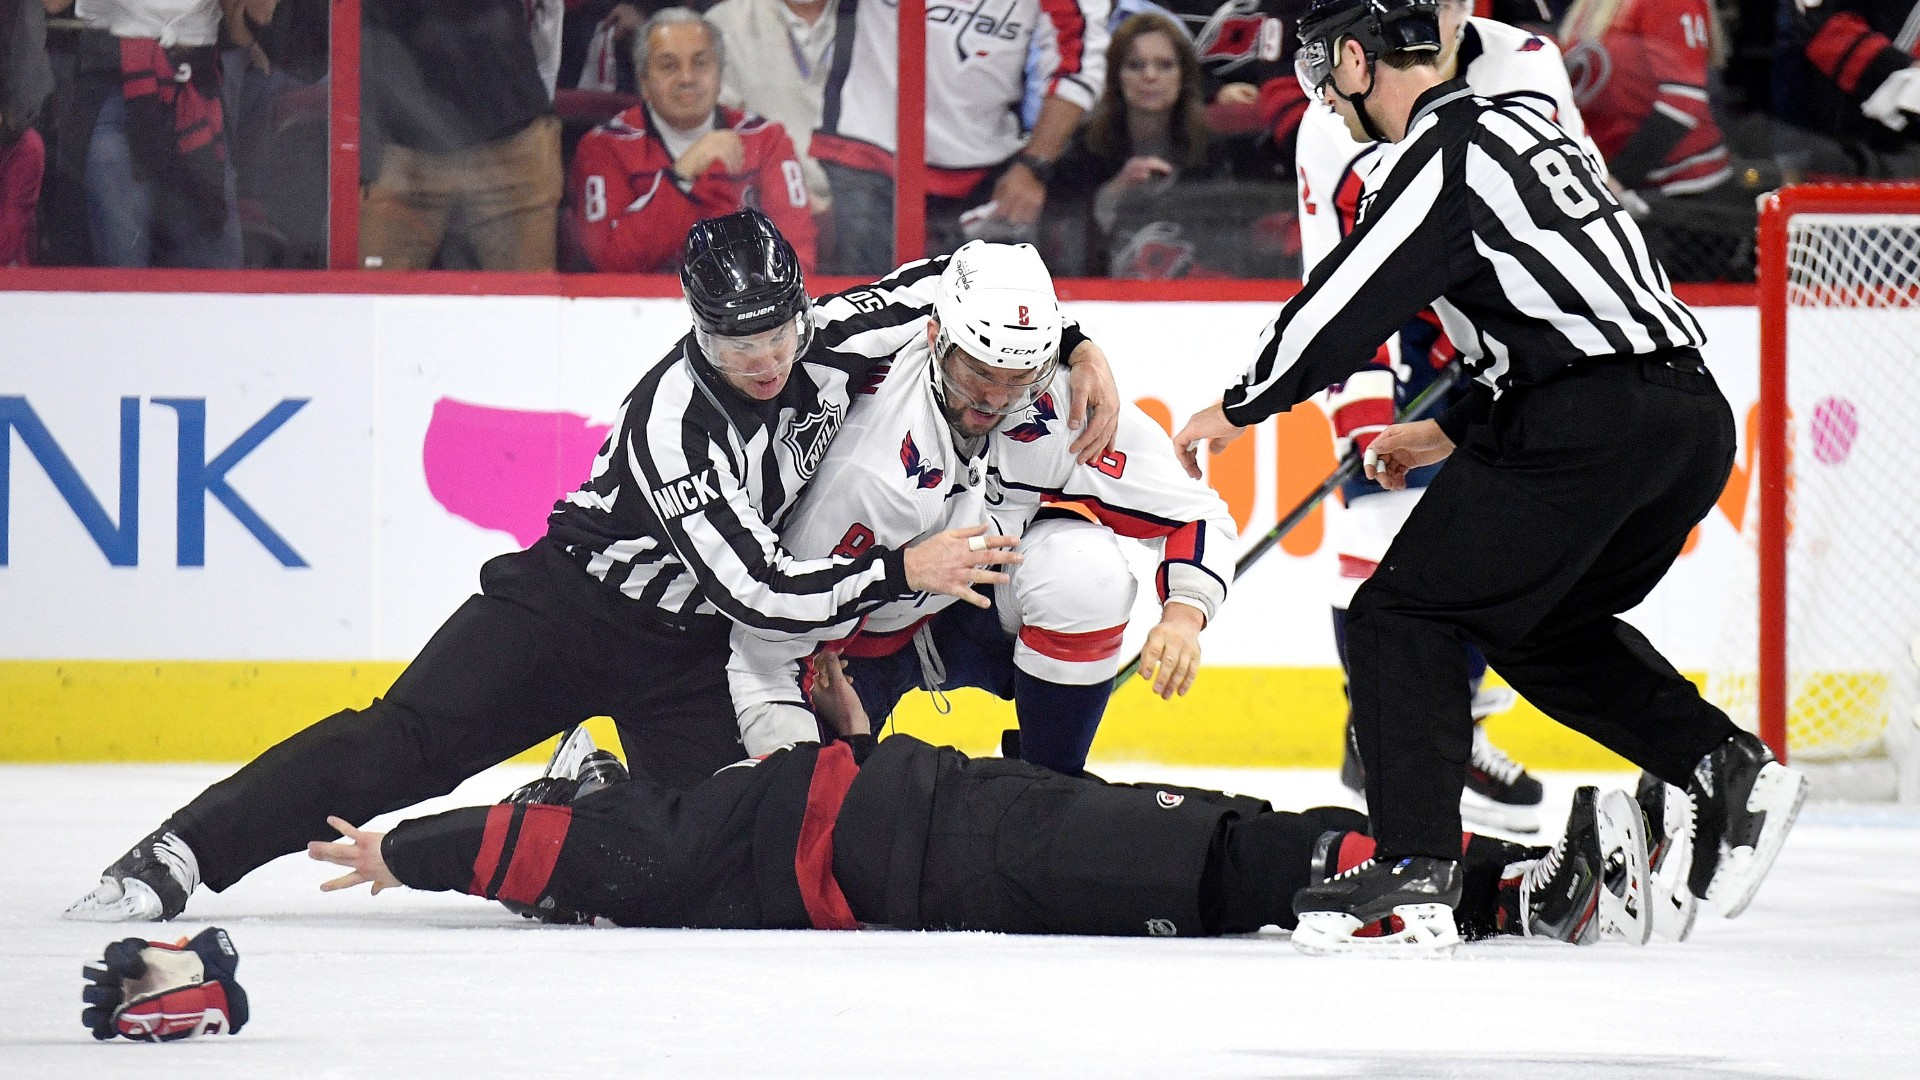 Nhl Playoffs 2019 Alex Ovechkin Knocks Out Canes Andrei Svechnikov In First Period Fight